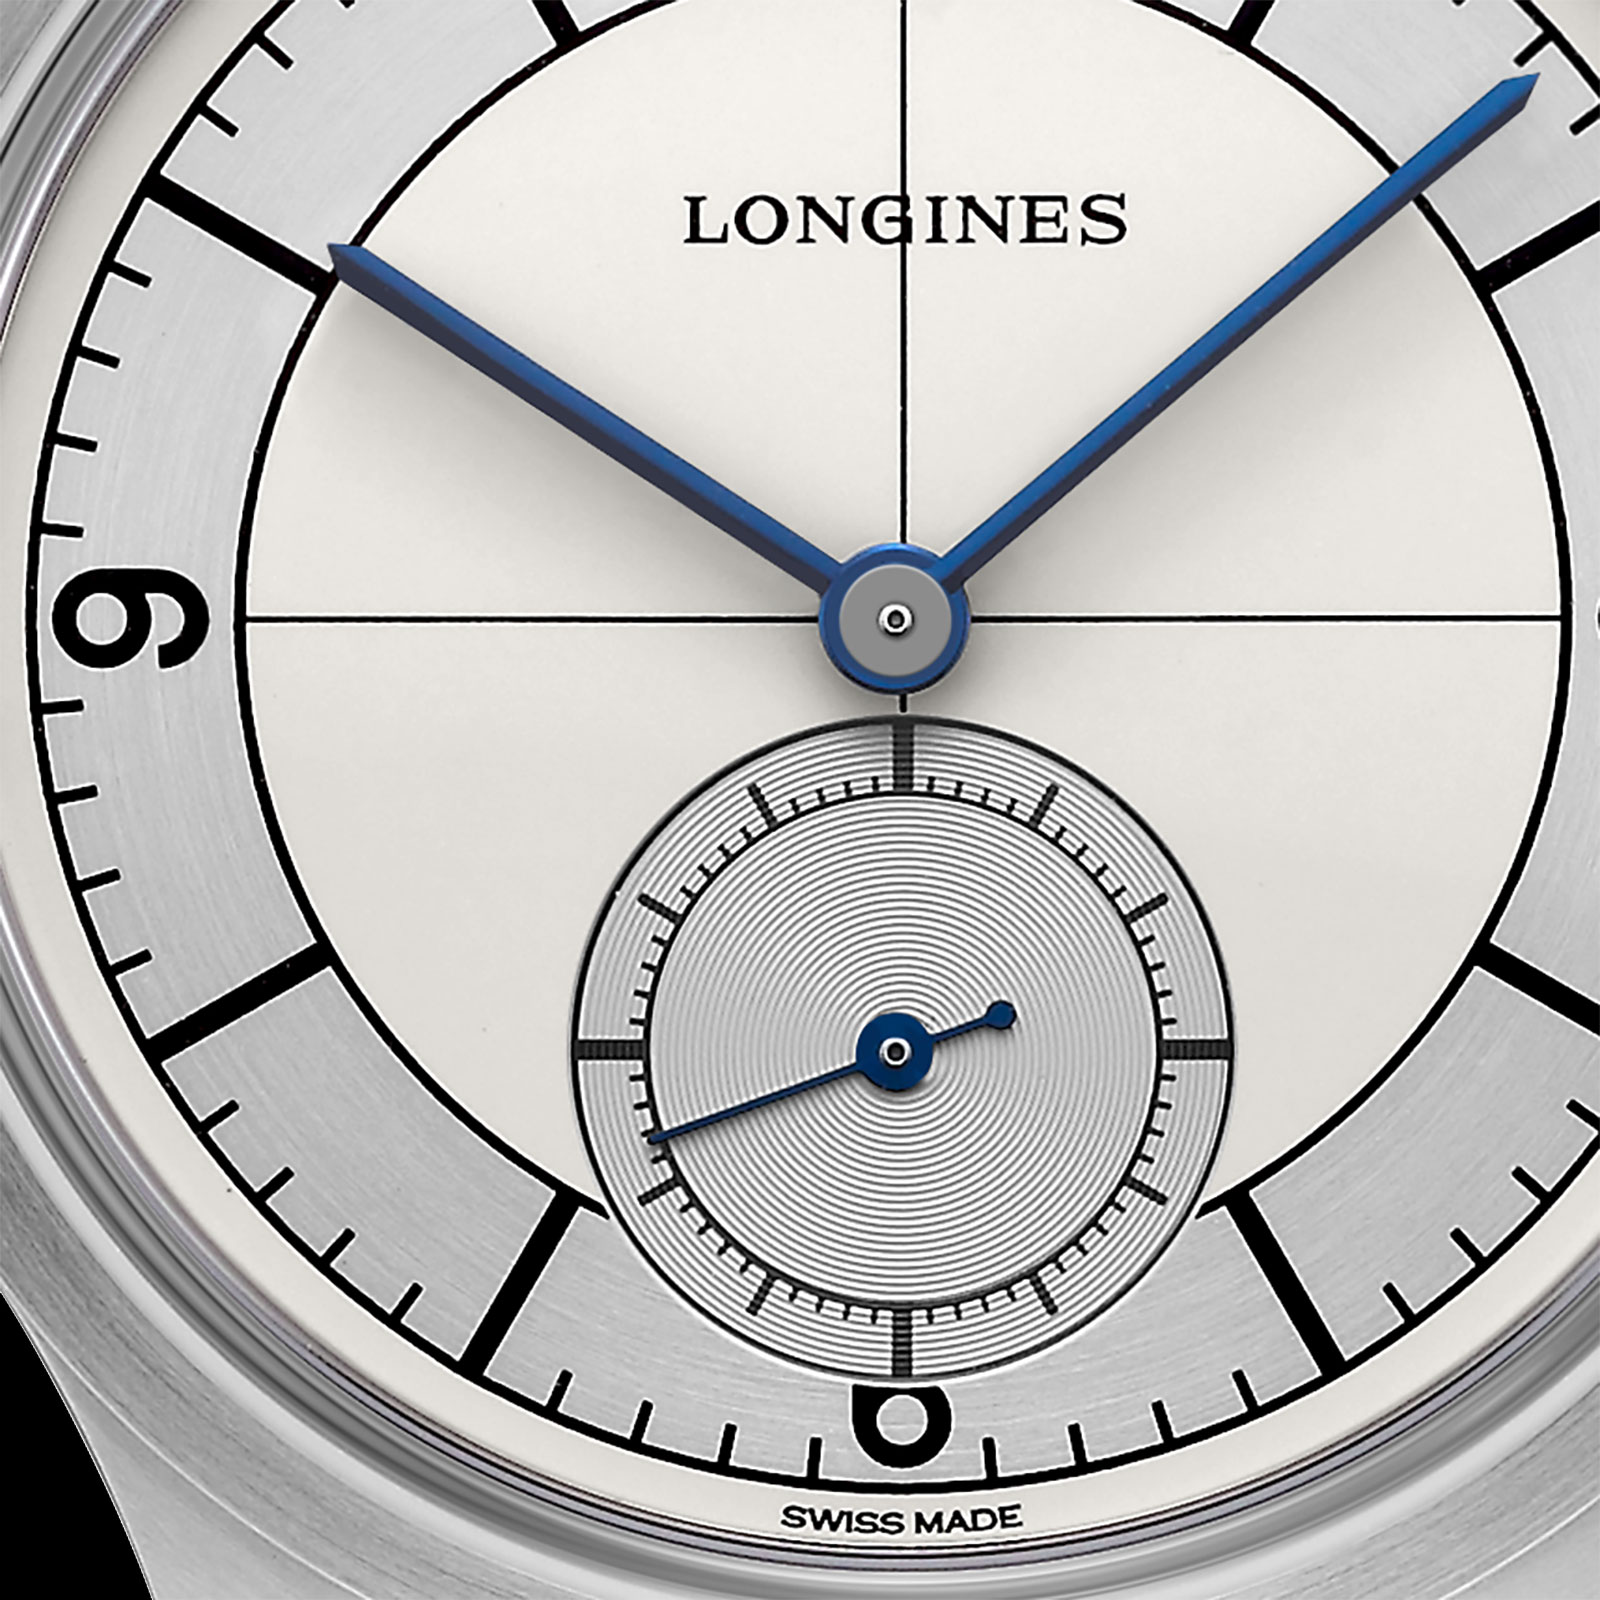 longines Heritage Classic Sector Dial